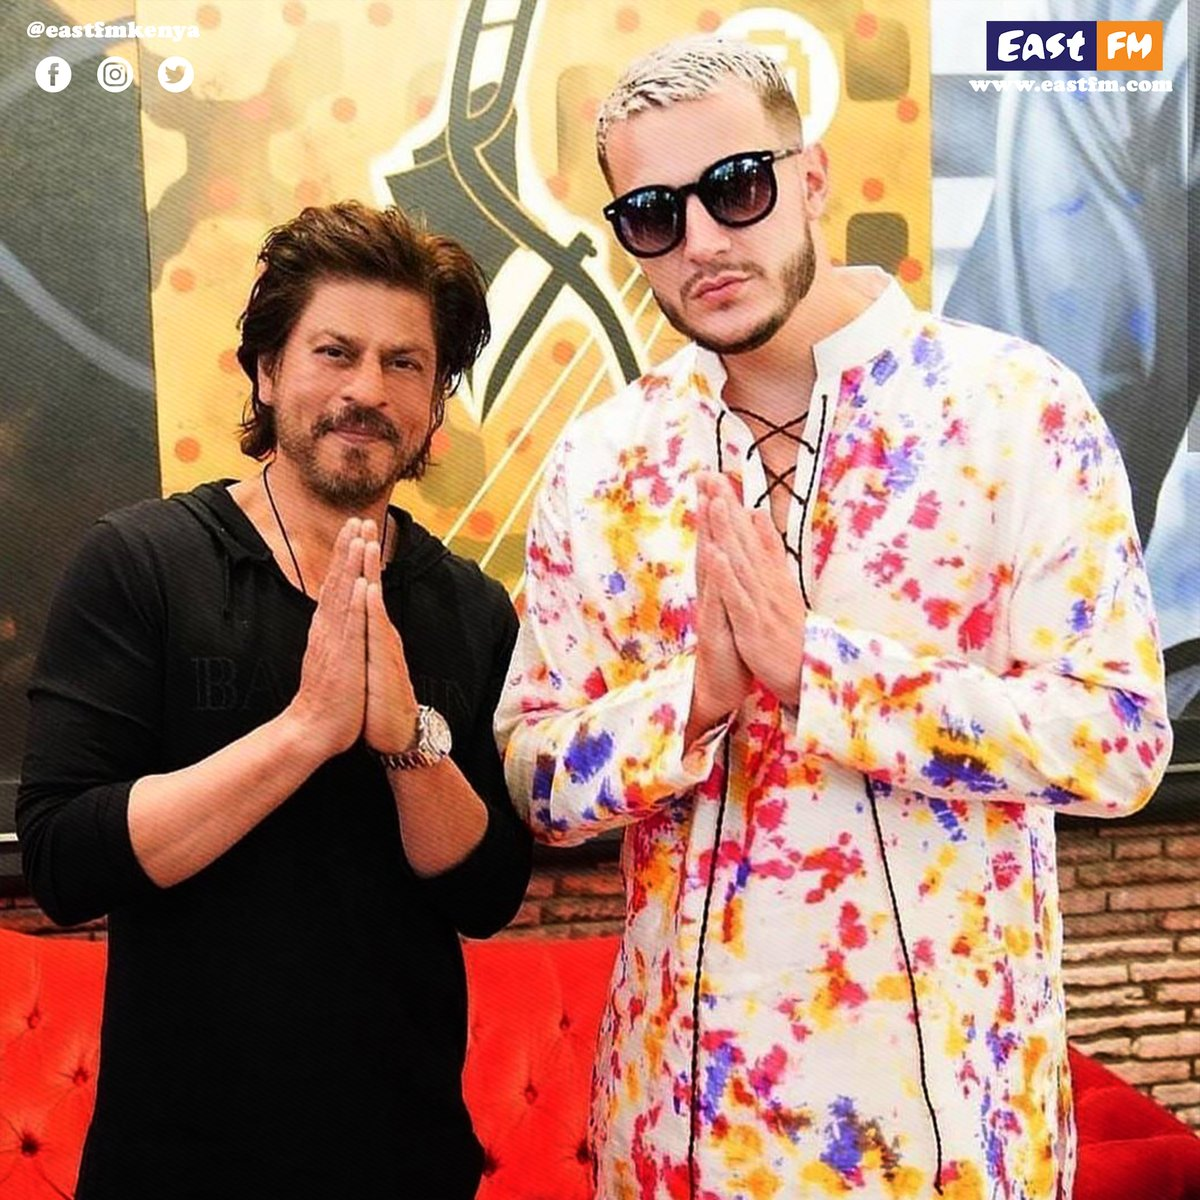 Throwback to when #ShahRukhKhan posed for a picture with #DjSnake and taught him his signature pose. #shahrukhkhanfans #shahrukhkhanfanclub #shahrukhkhanlovers #shahrukhkhanclub #djsnakefans #djsnakearmy #EastFm #EastFmKenya #RadioAfrica https://t.co/DO7O7B2DNn